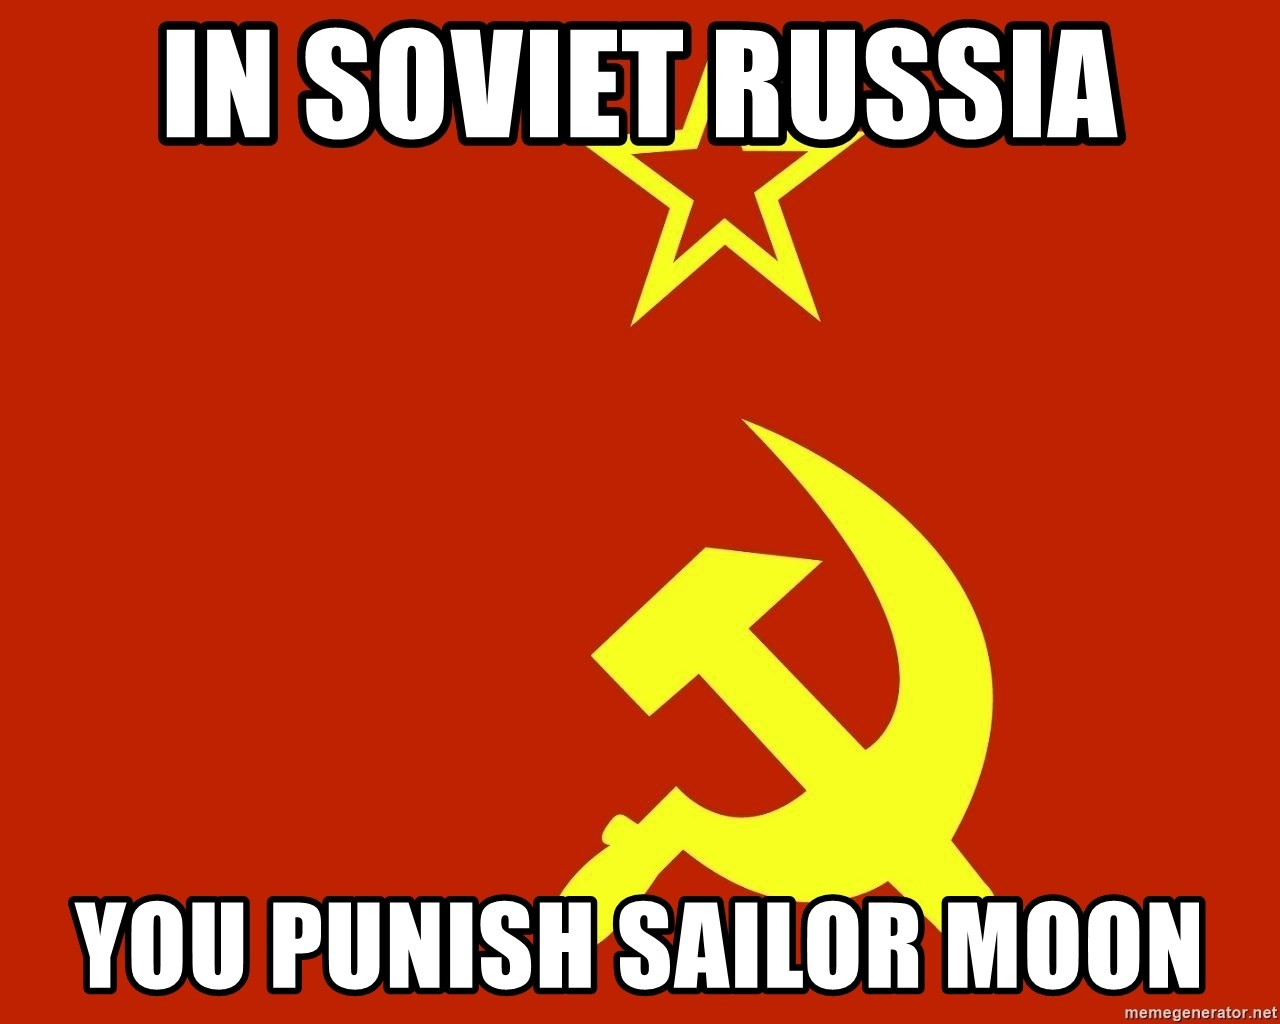 In Soviet Russia - In Soviet Russia You Punish Sailor Moon